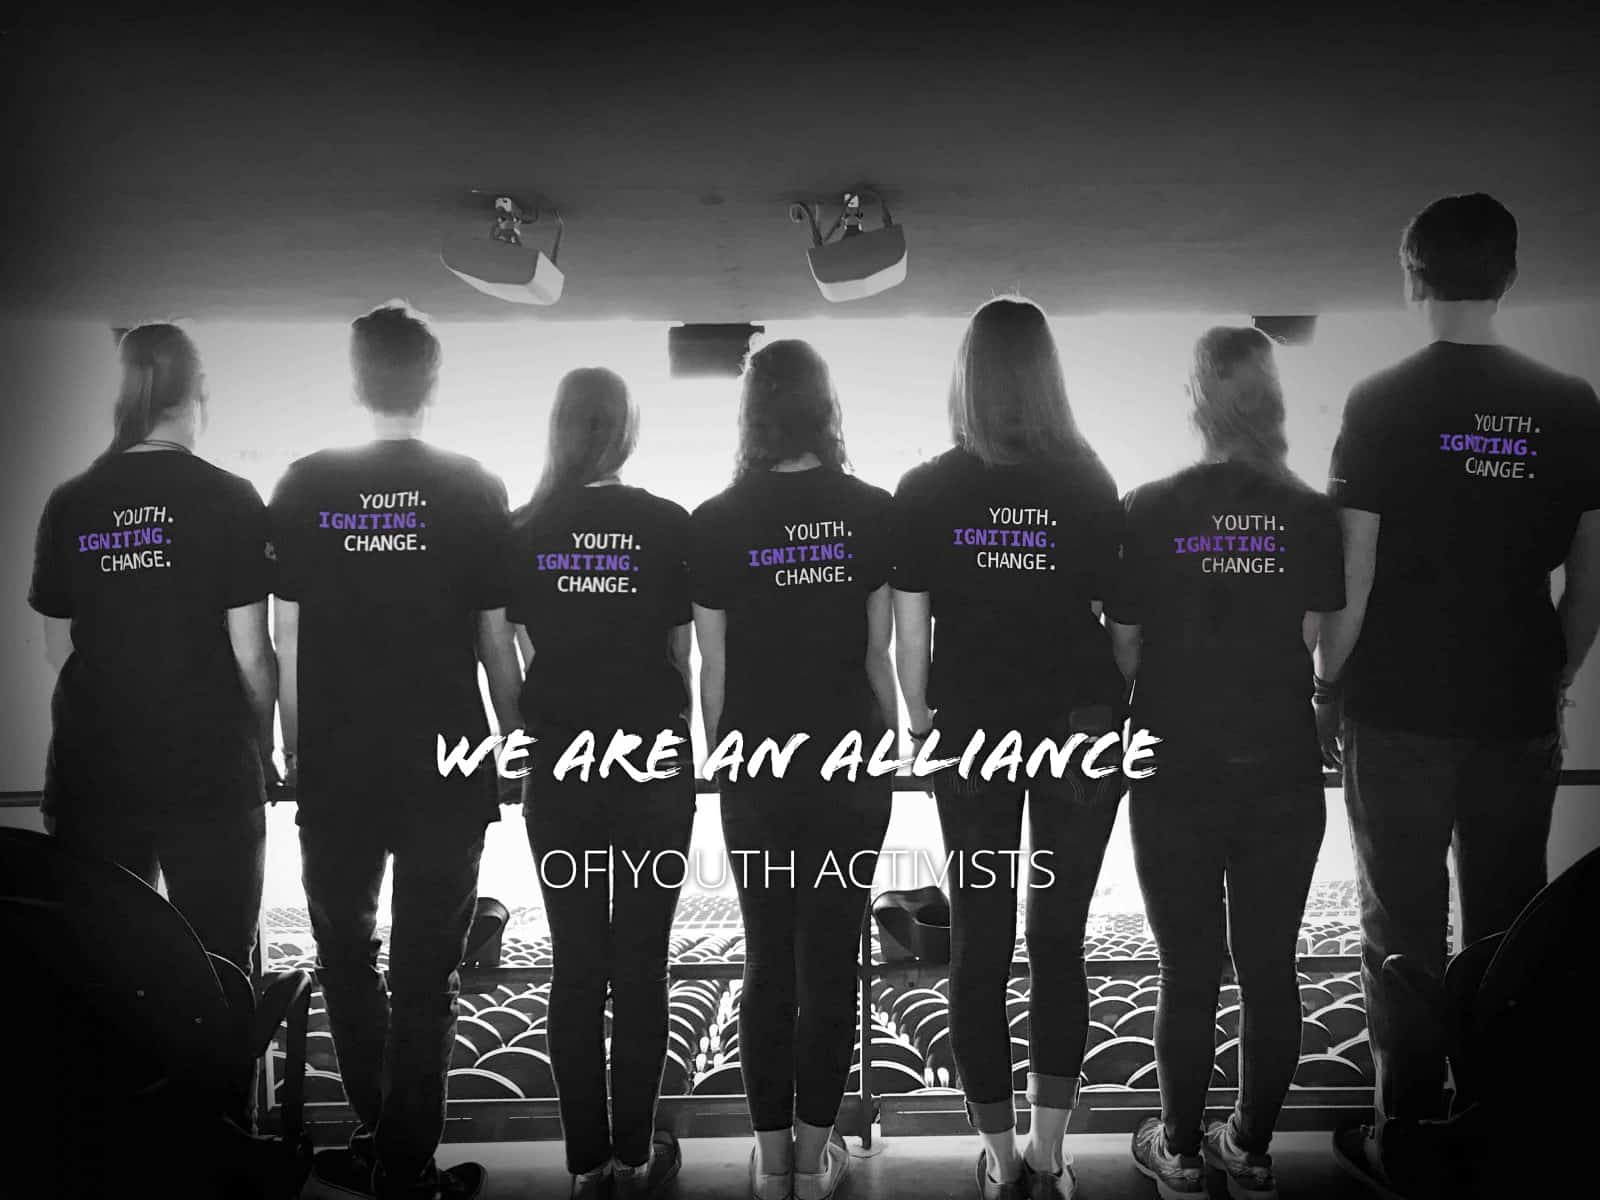 we are an alliance of youth activists